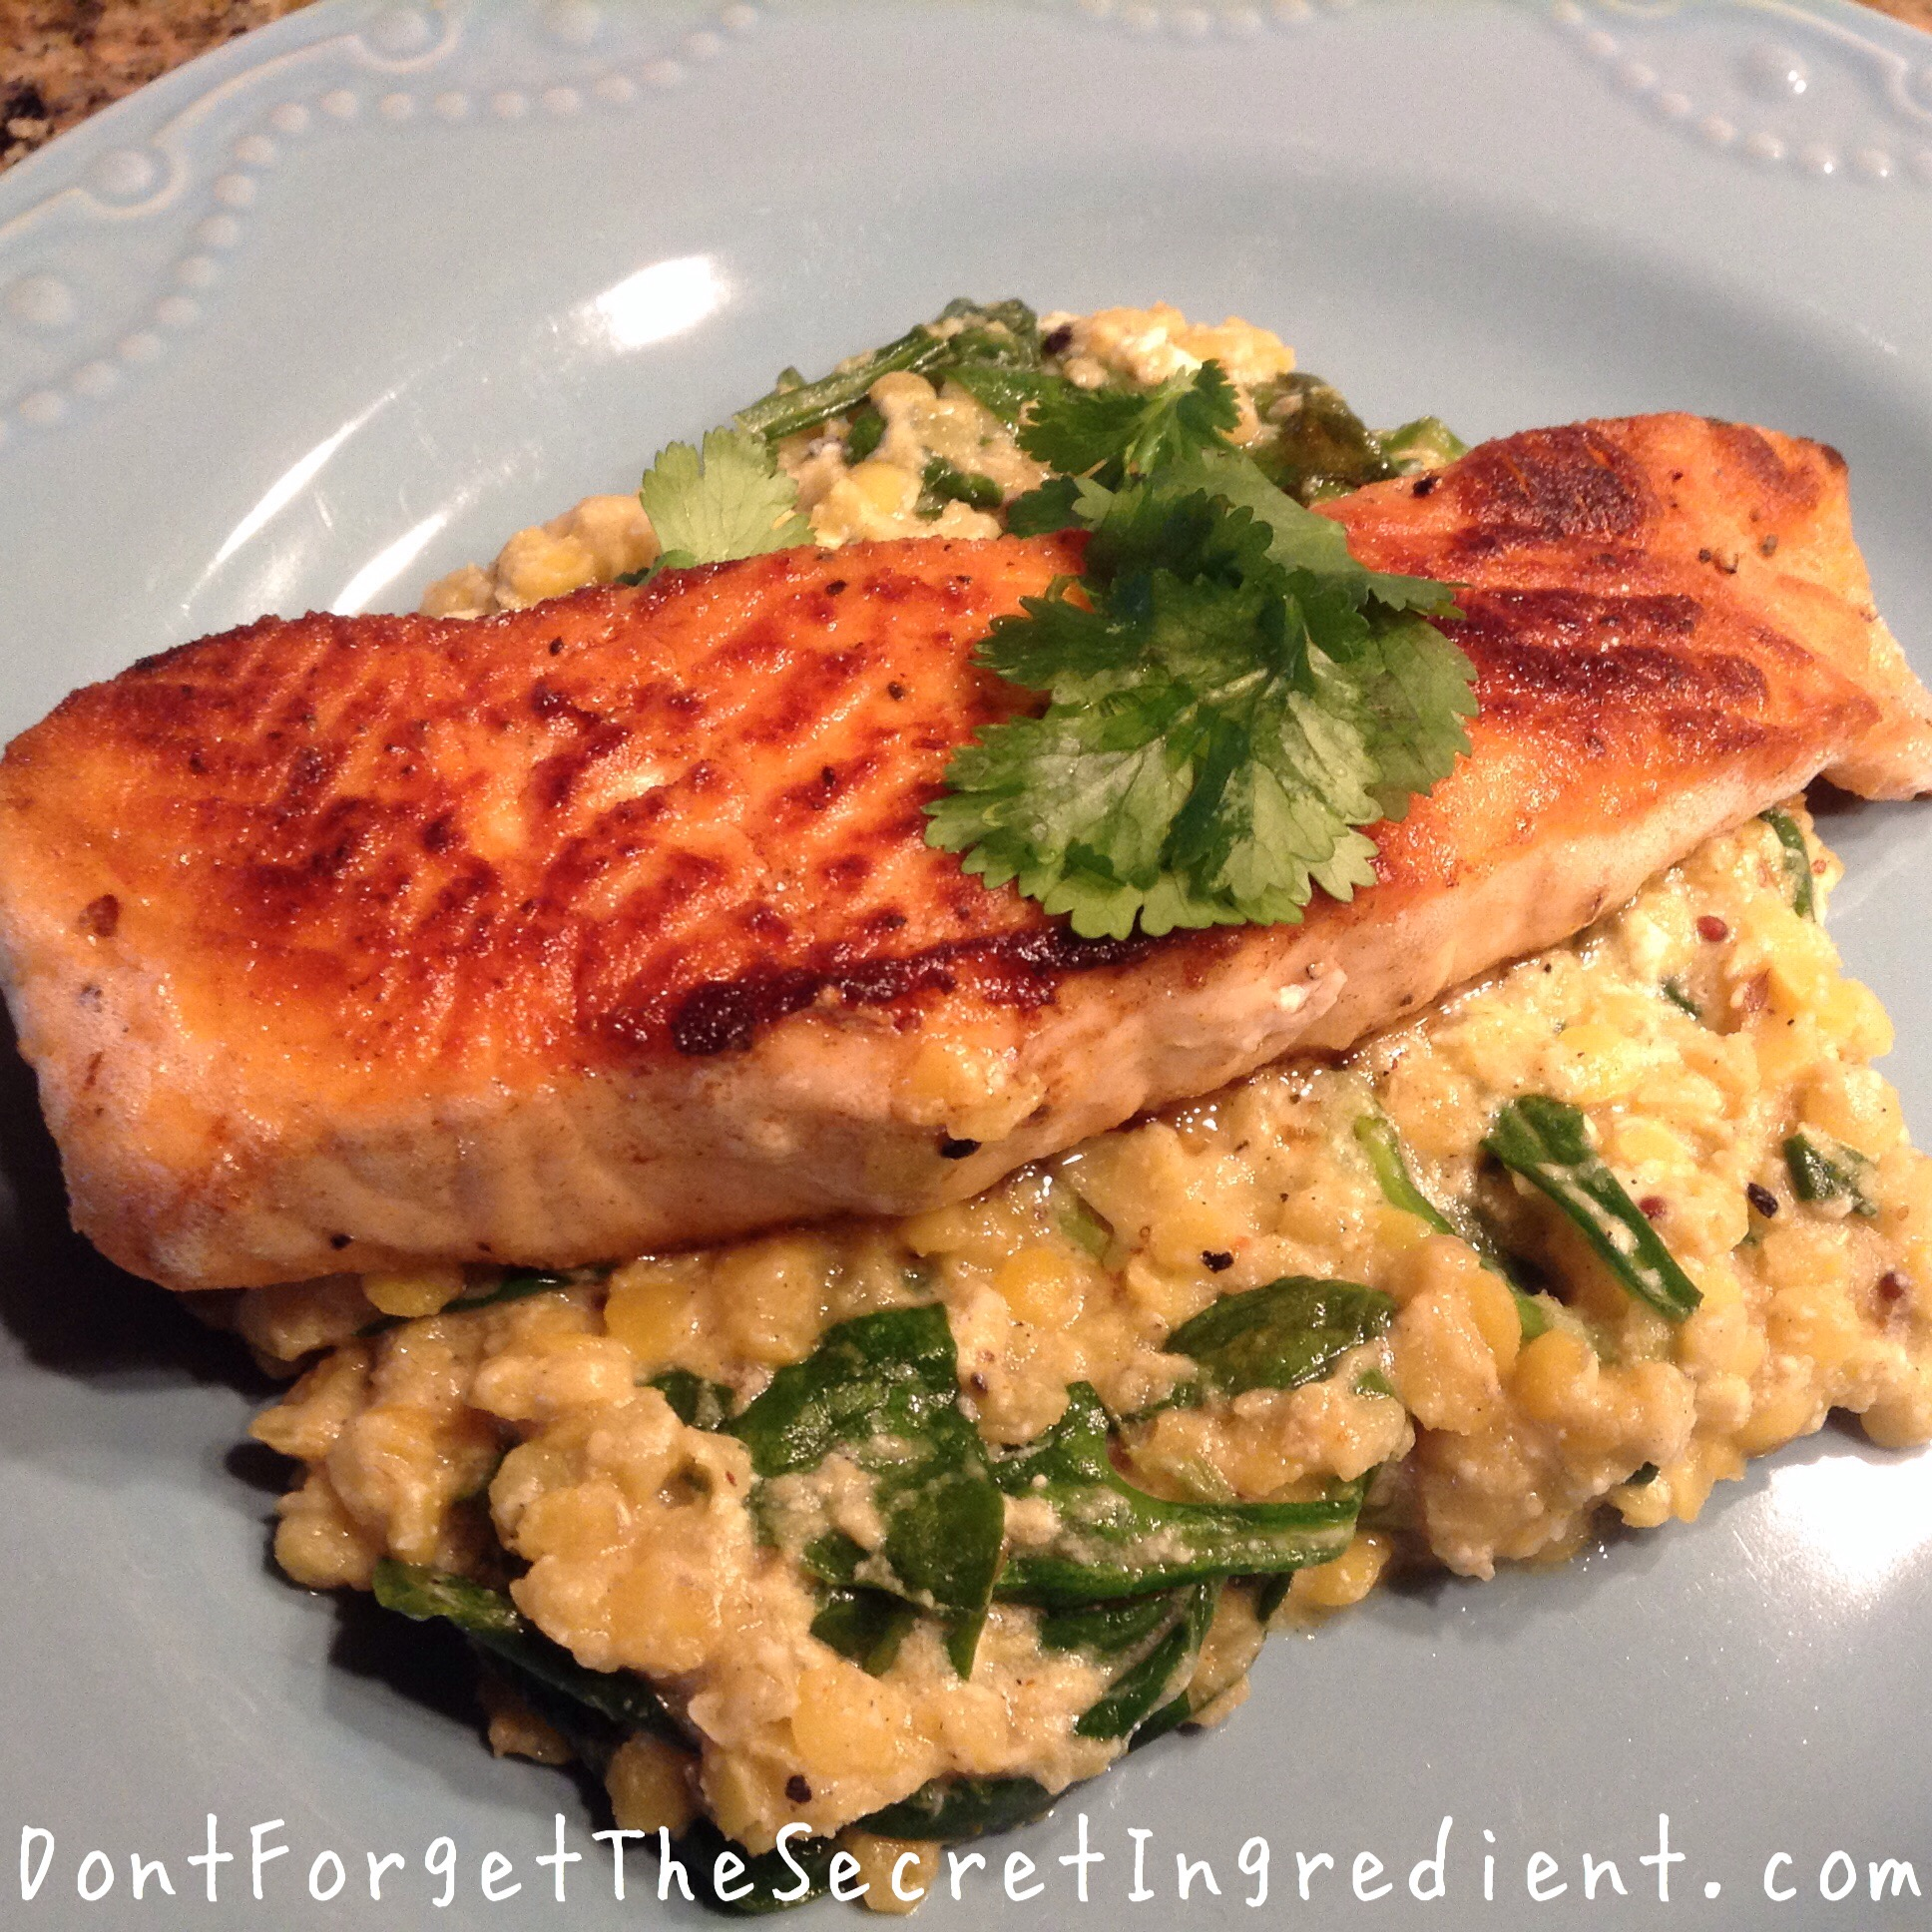 Blue apron zester - The Spices In This Dish Are A Fragrant Combination Of Cumin Cardamom Cayenne Pepper And Mustard Seeds This Recipe Is Courtesy Of Blue Apron